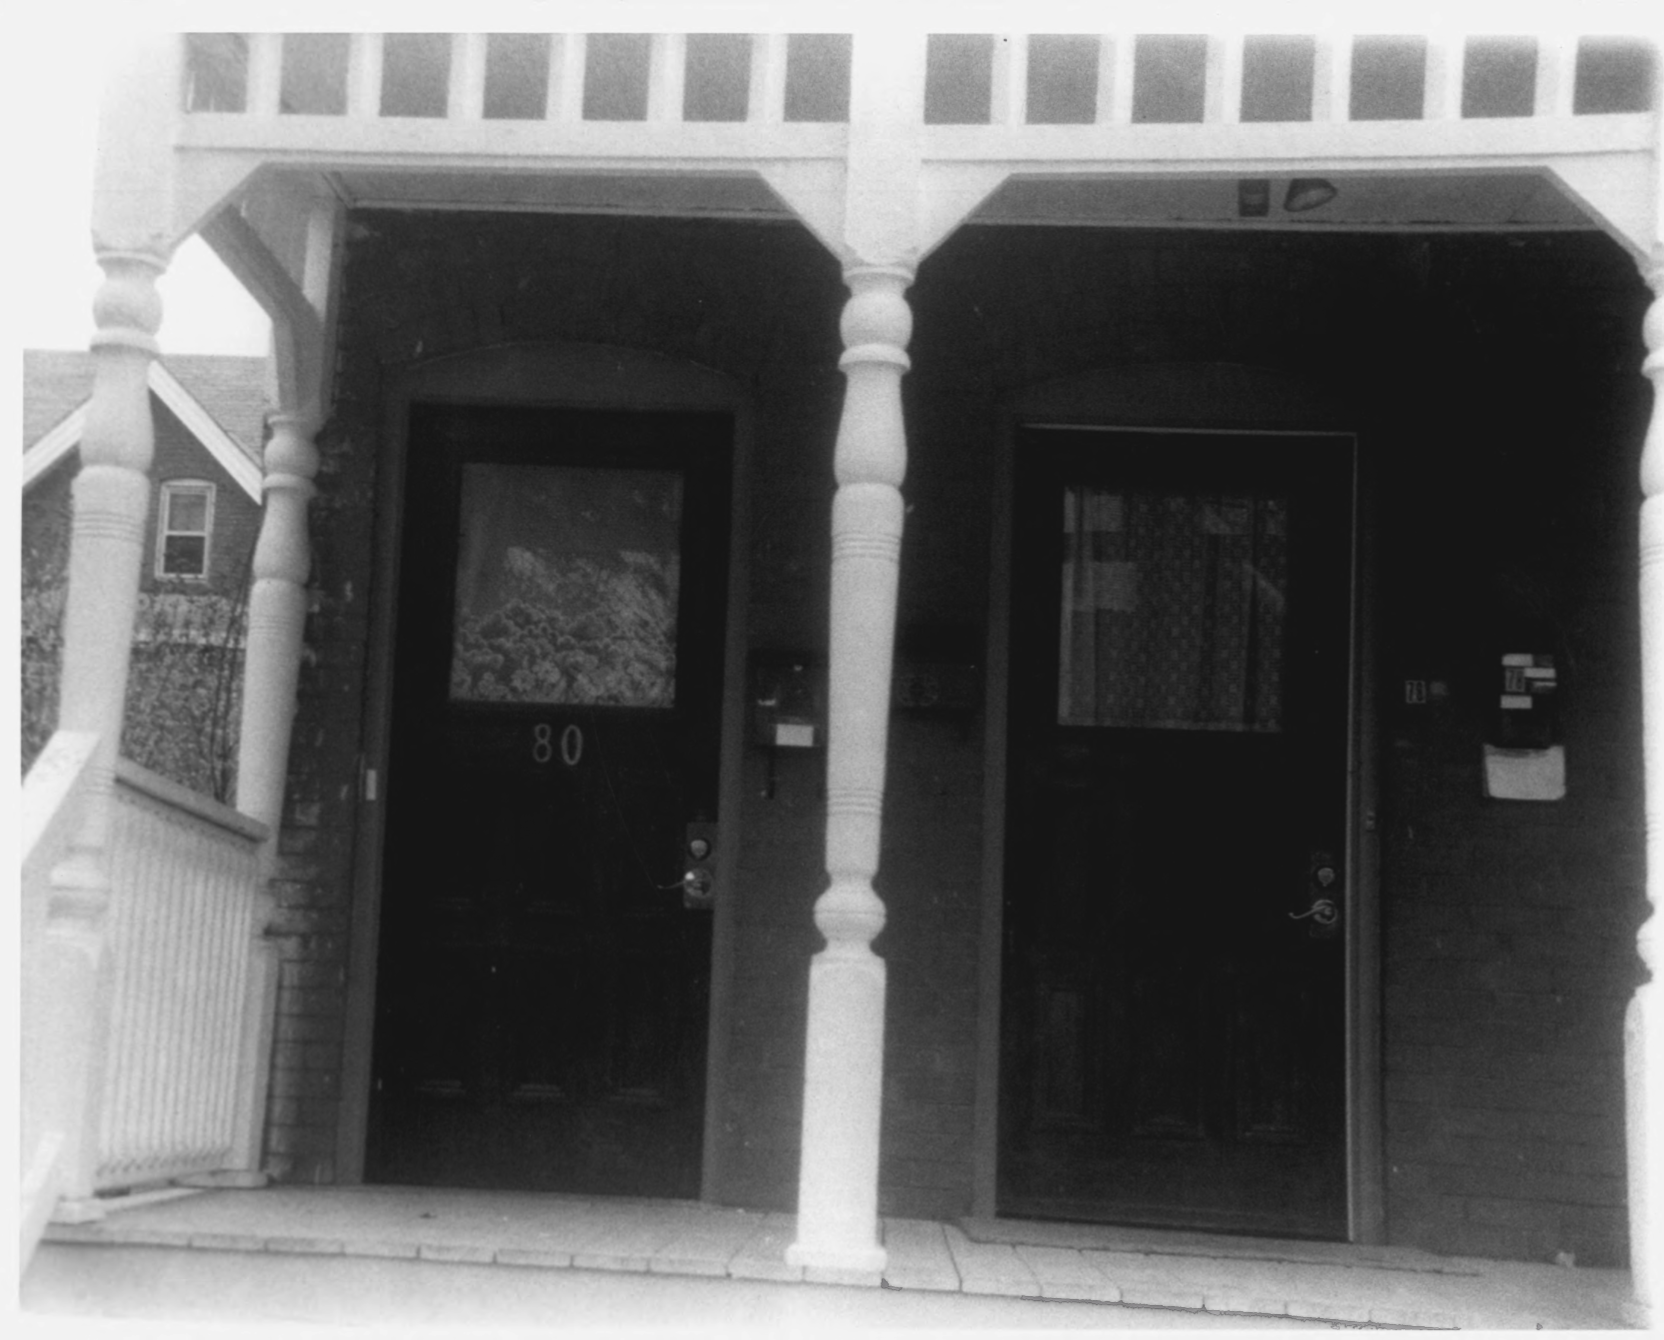 Allen Place - Lincoln Street Historic District Photo Record, Maintained by the NPS, Photo 13